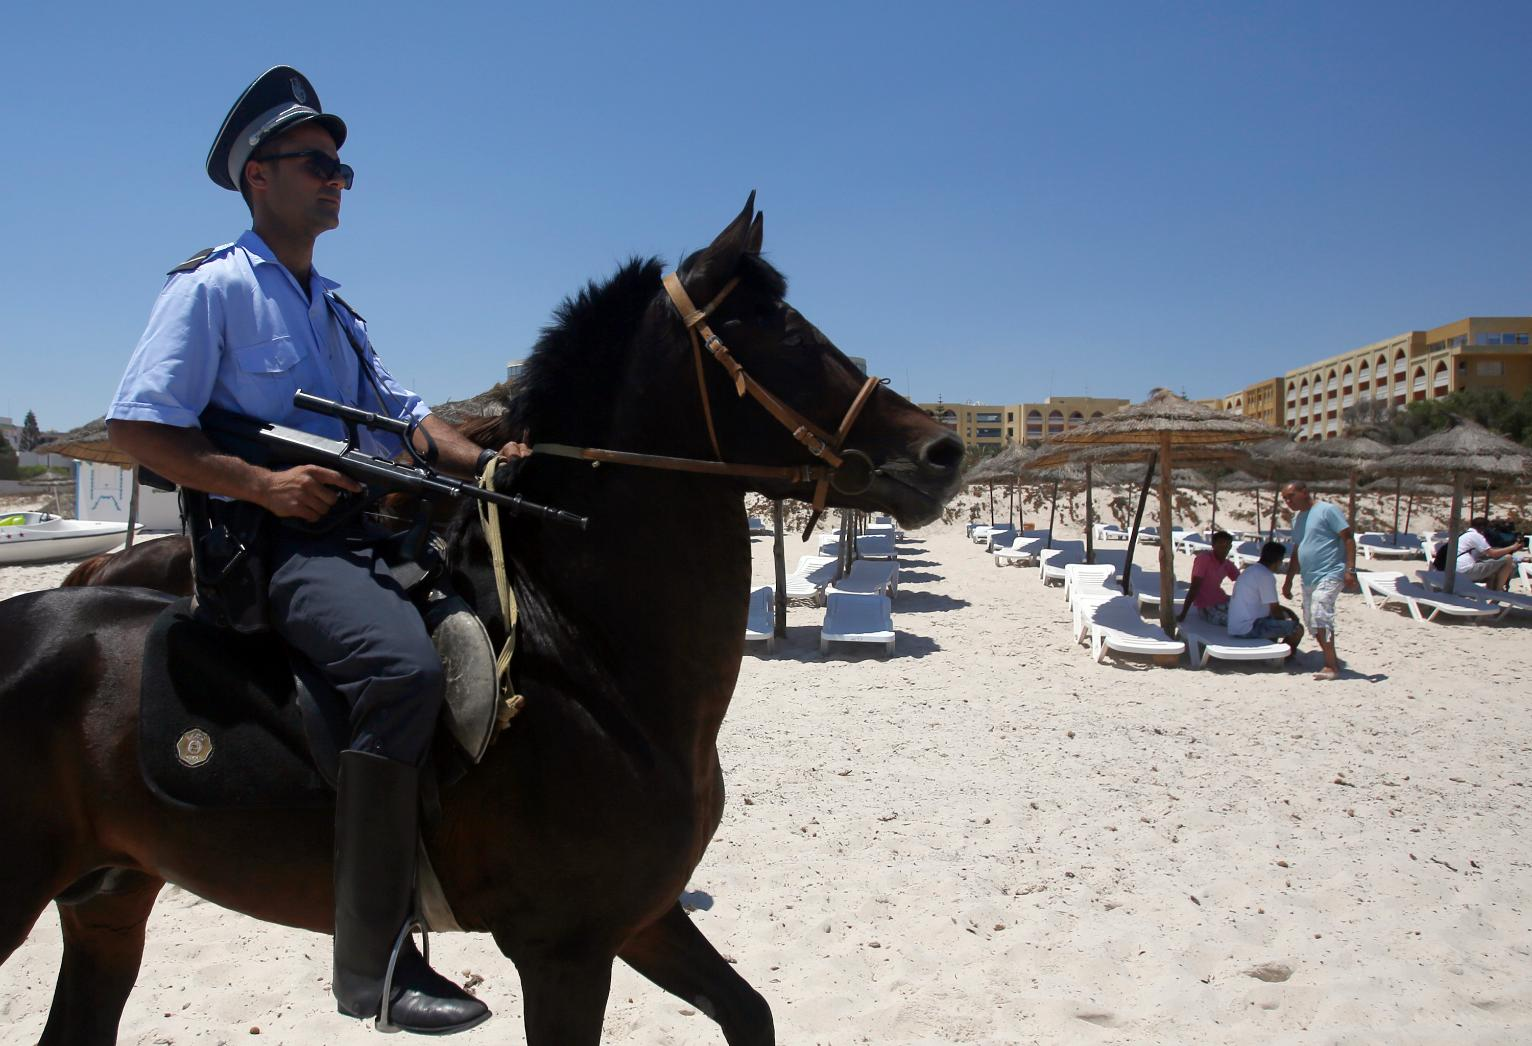 Tunisia Searching for More Suspects in Beach Attack